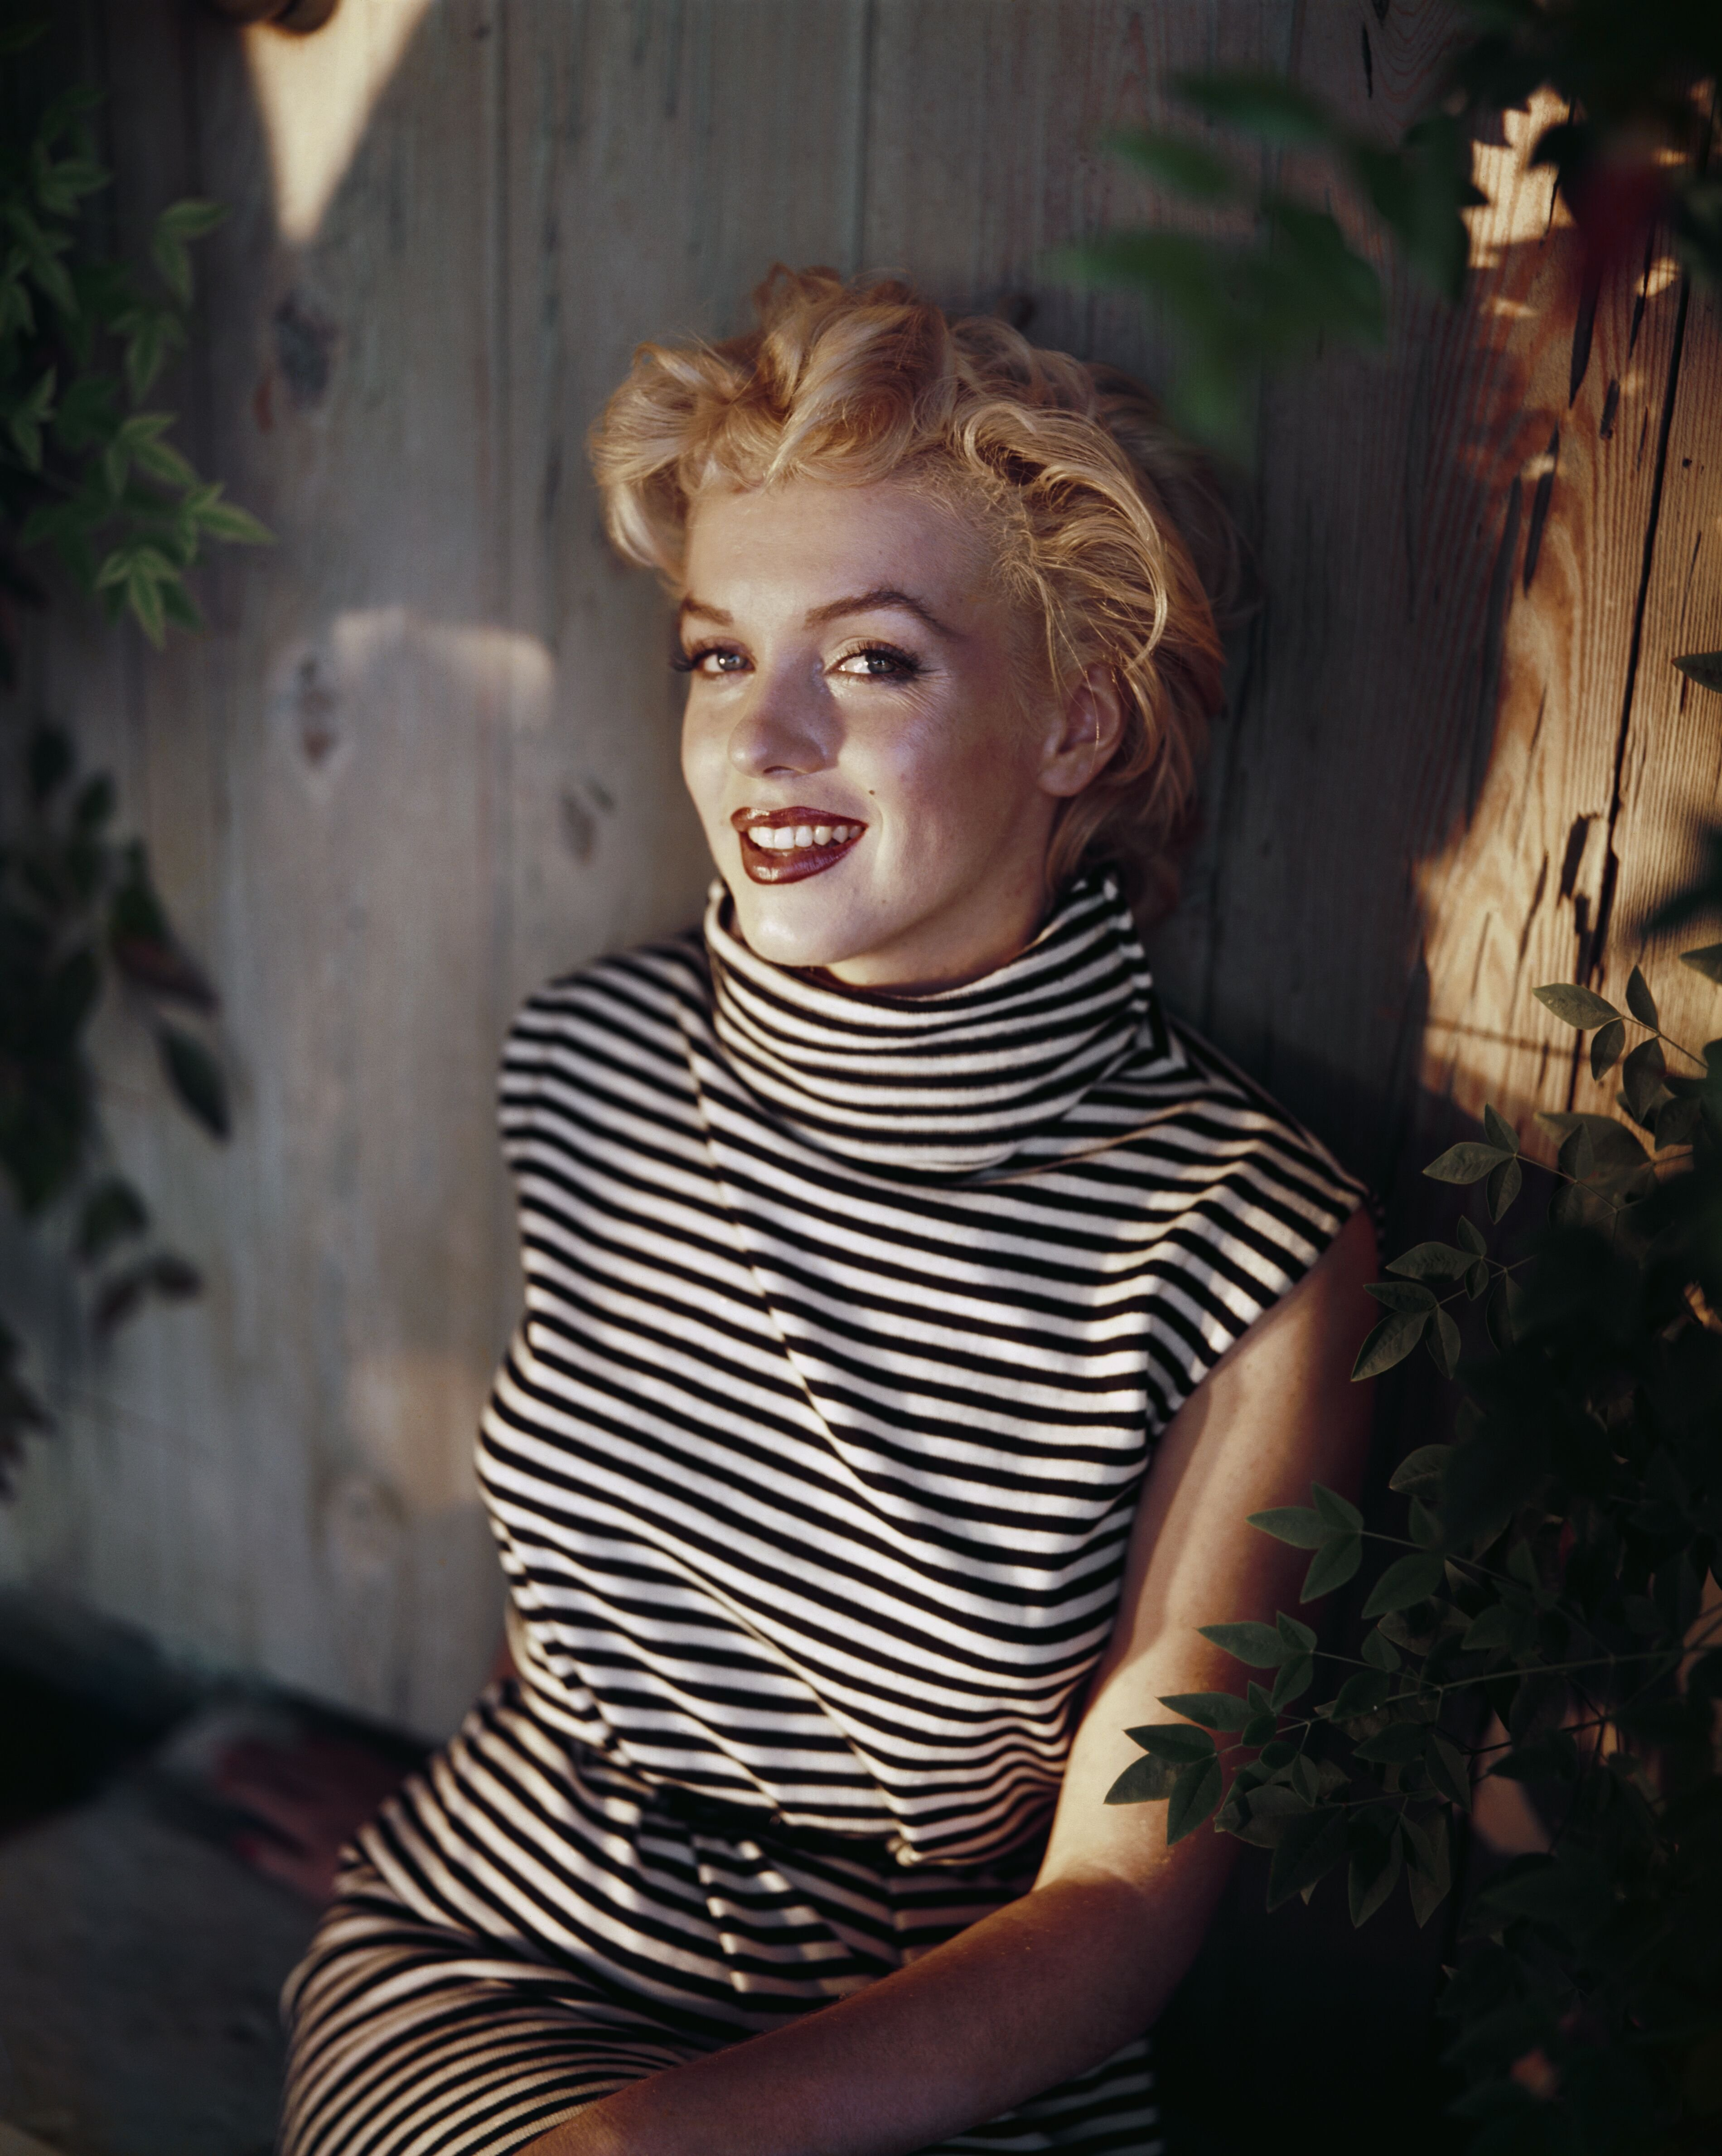 Marilyn Monroe poses for a portrait shortly before her death in 1962 | Source: Getty Image